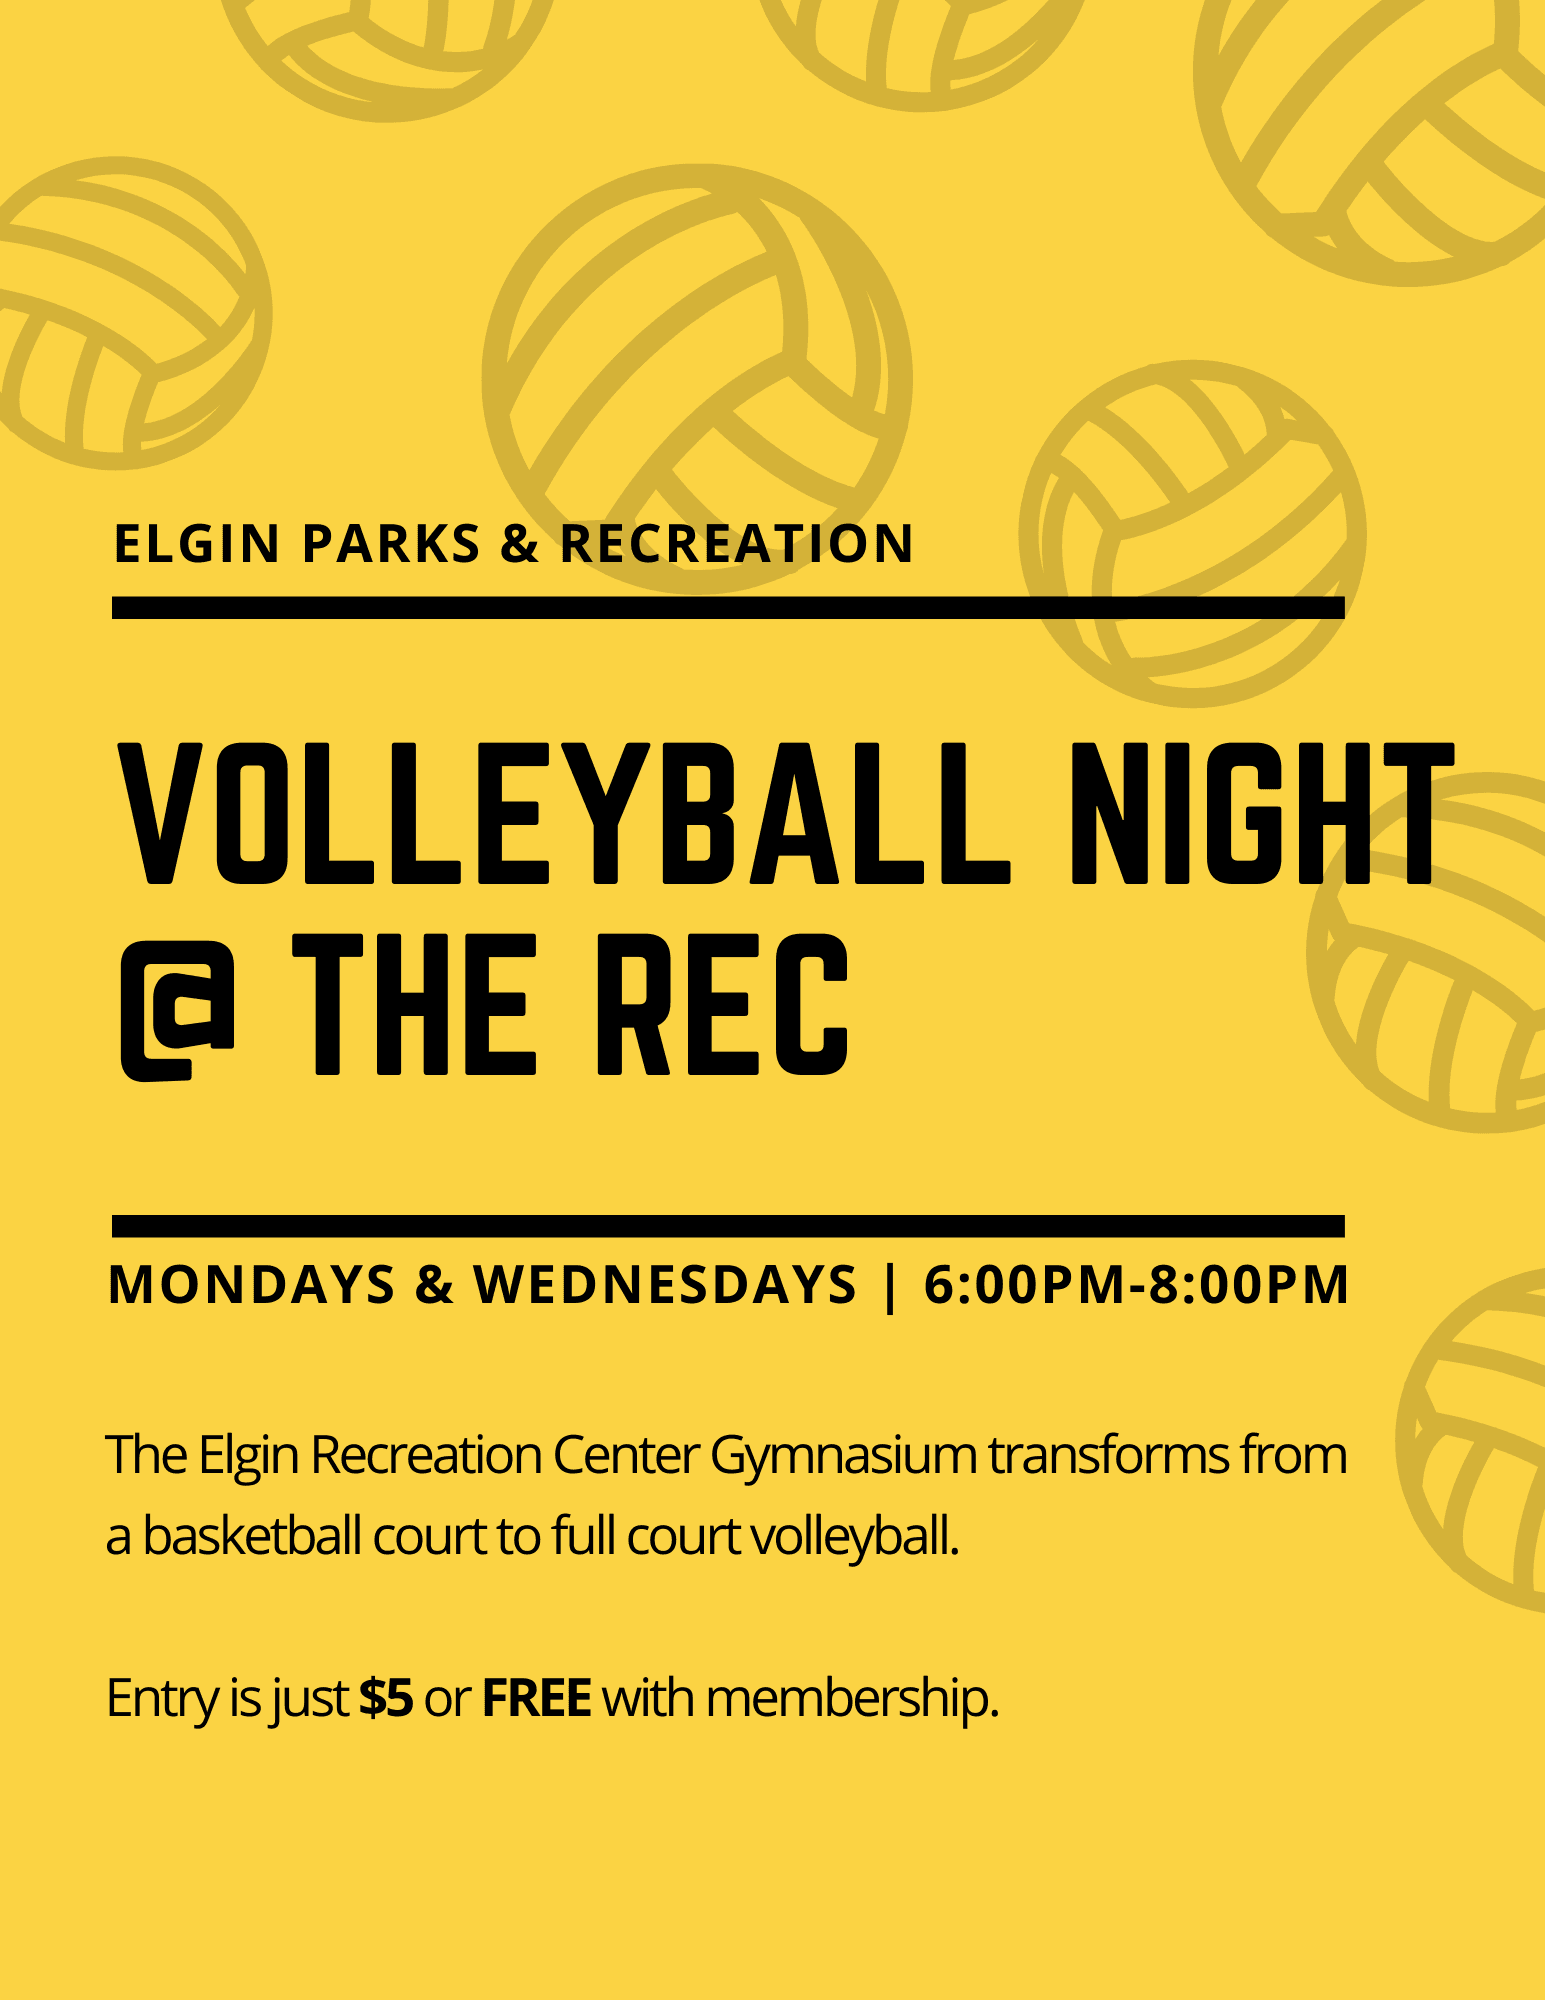 volleyball night Mondays and Wednesdays